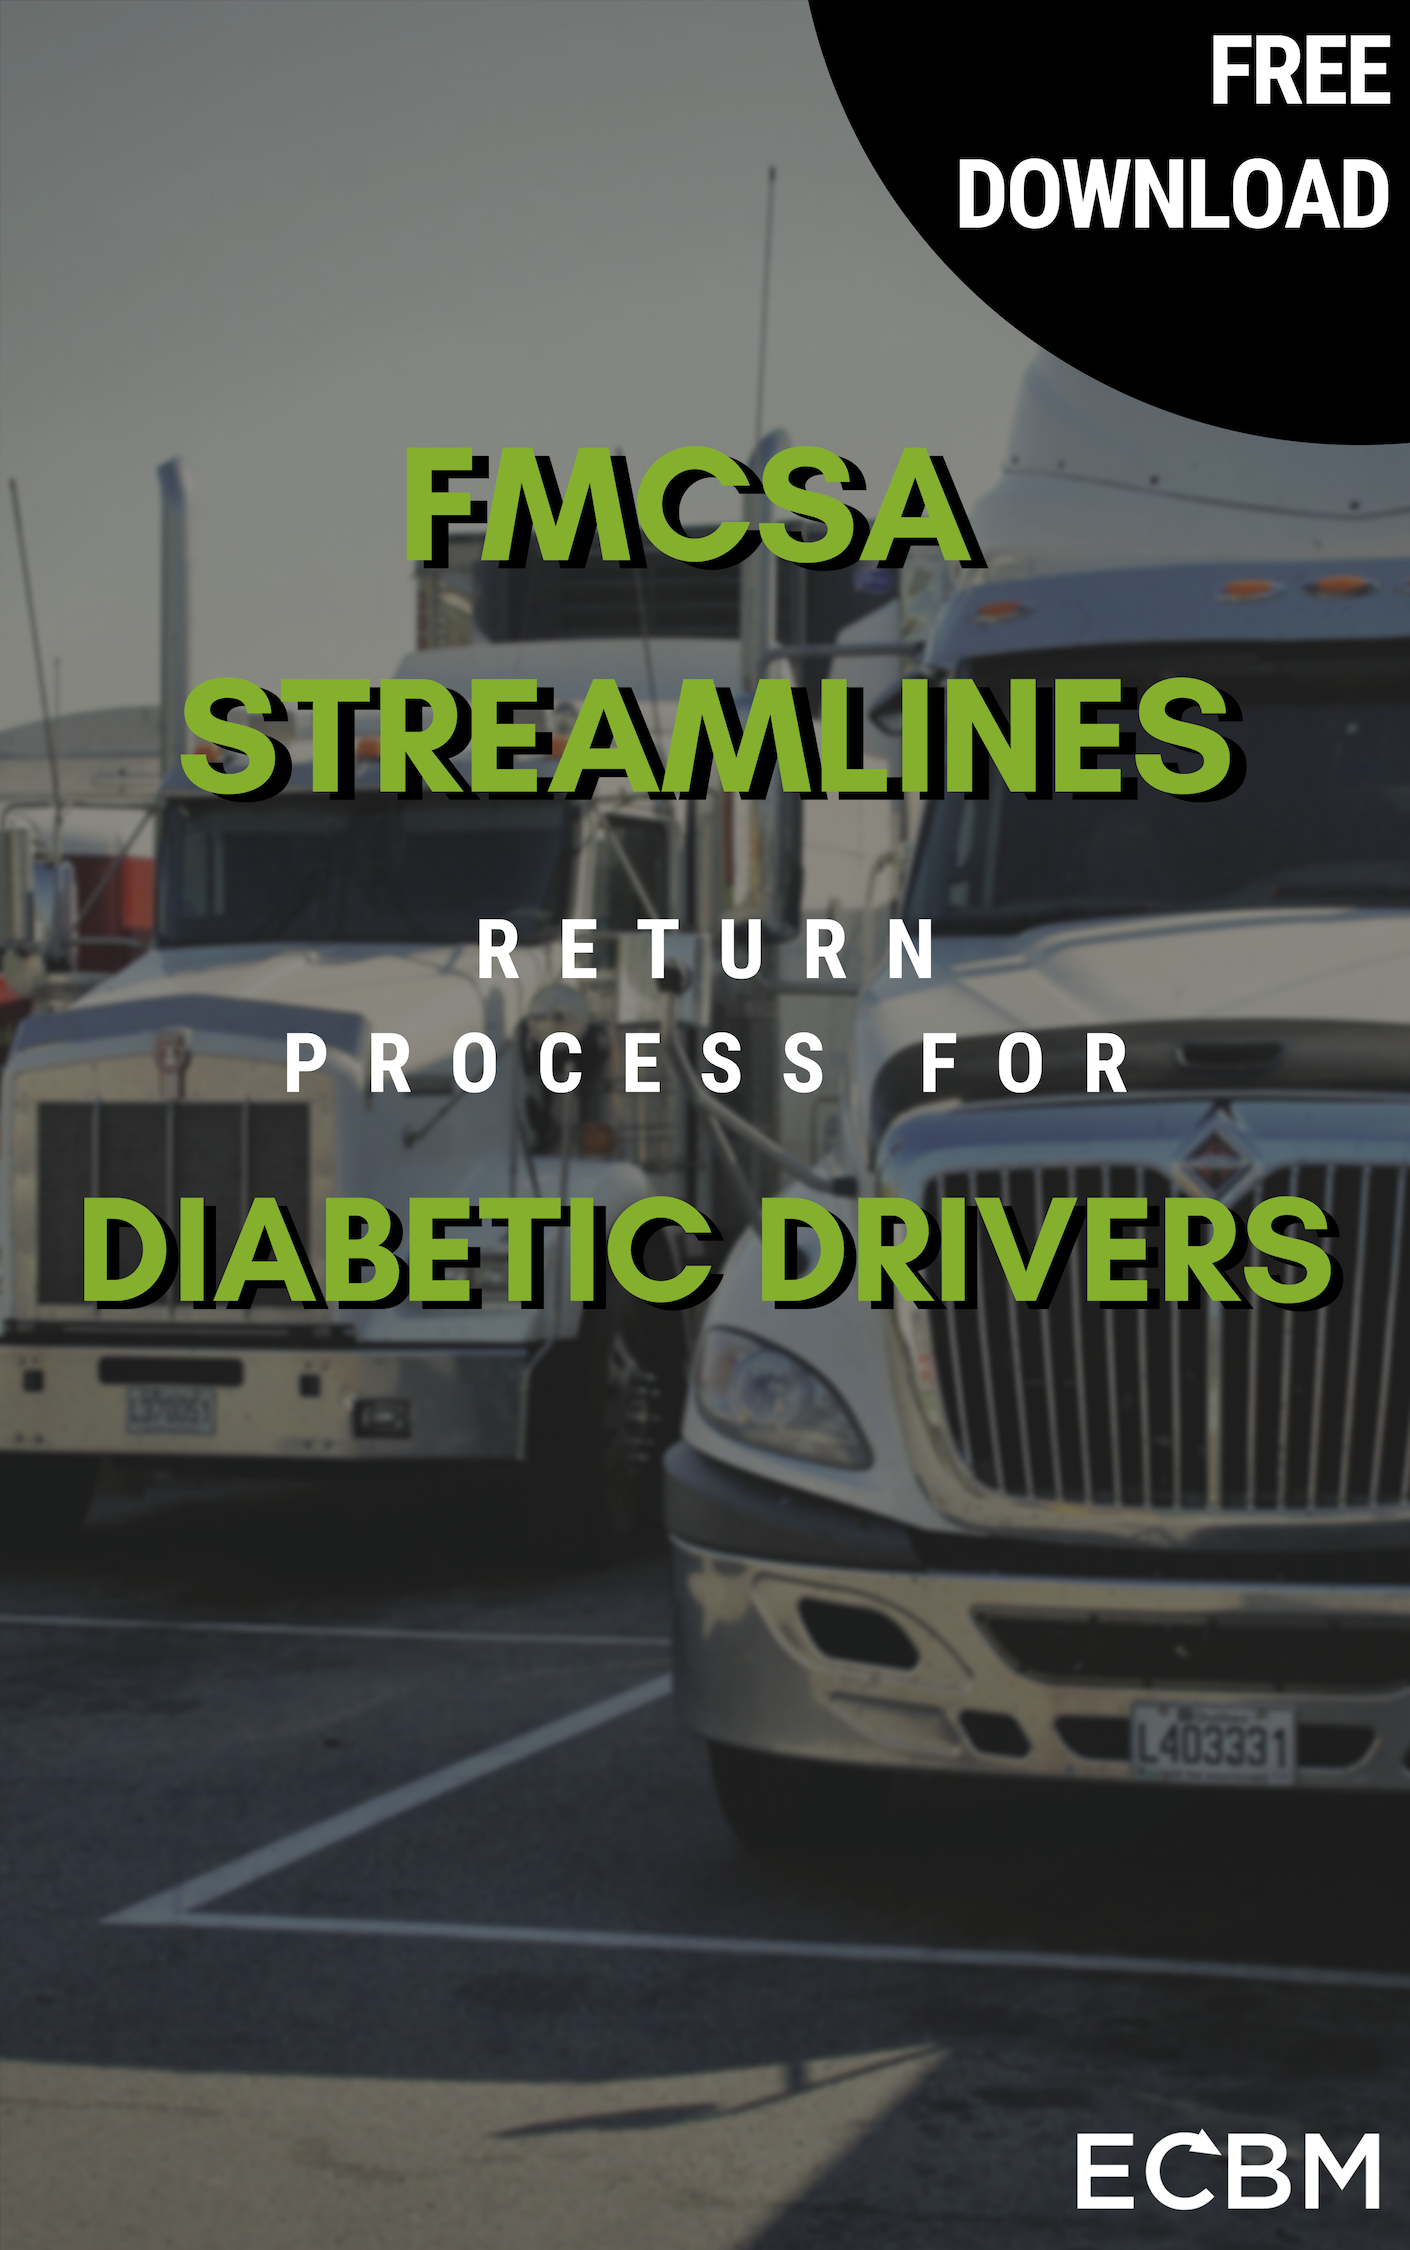 FMCSA Streamlines Return Process for Diabetic Drivers (1)